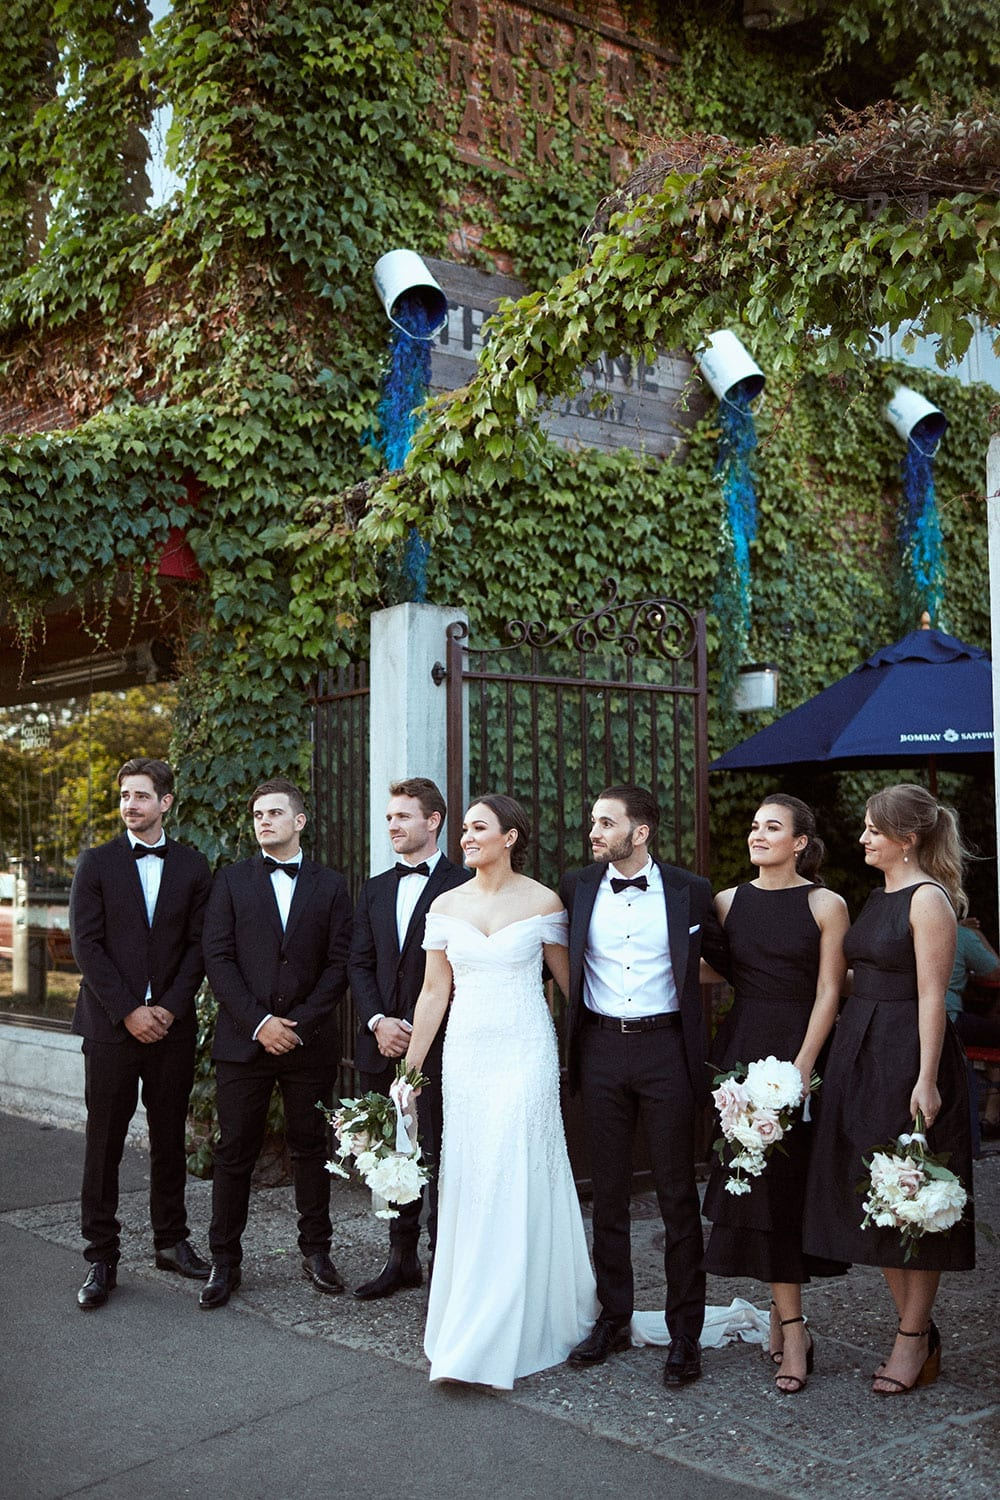 Vinka Design Features Real Weddings - bride in custom made gown with stunning silhouette. Bride and groom with bridal party outside venue